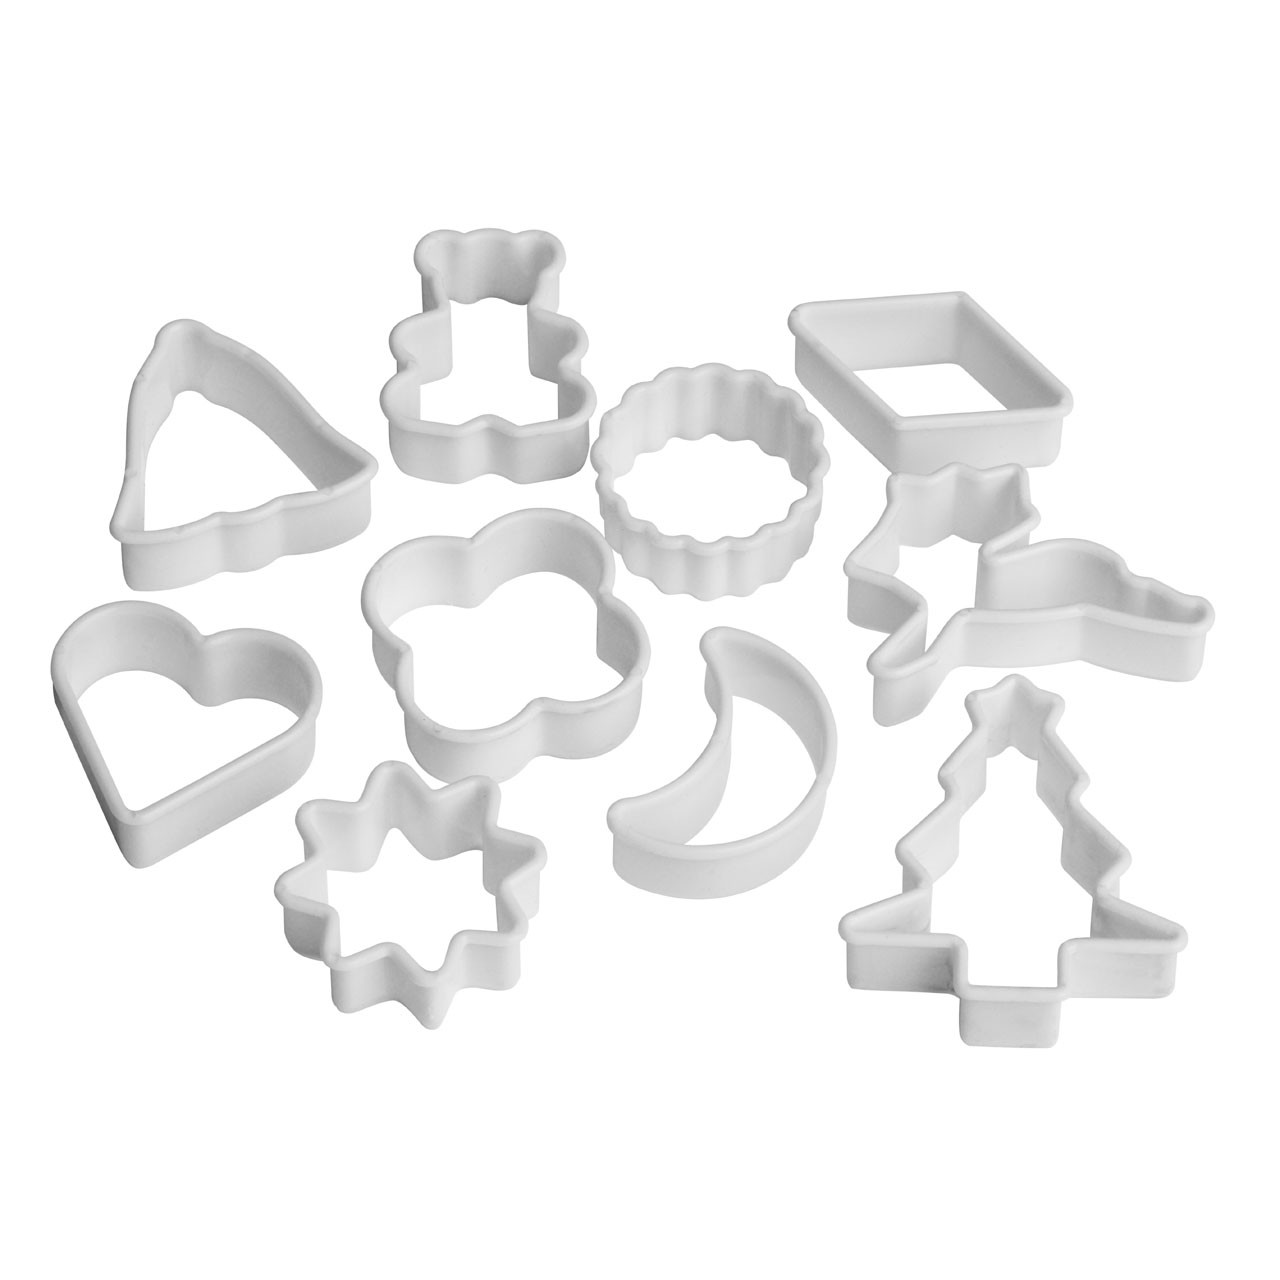 Cookie Cutters - White, Set of 10